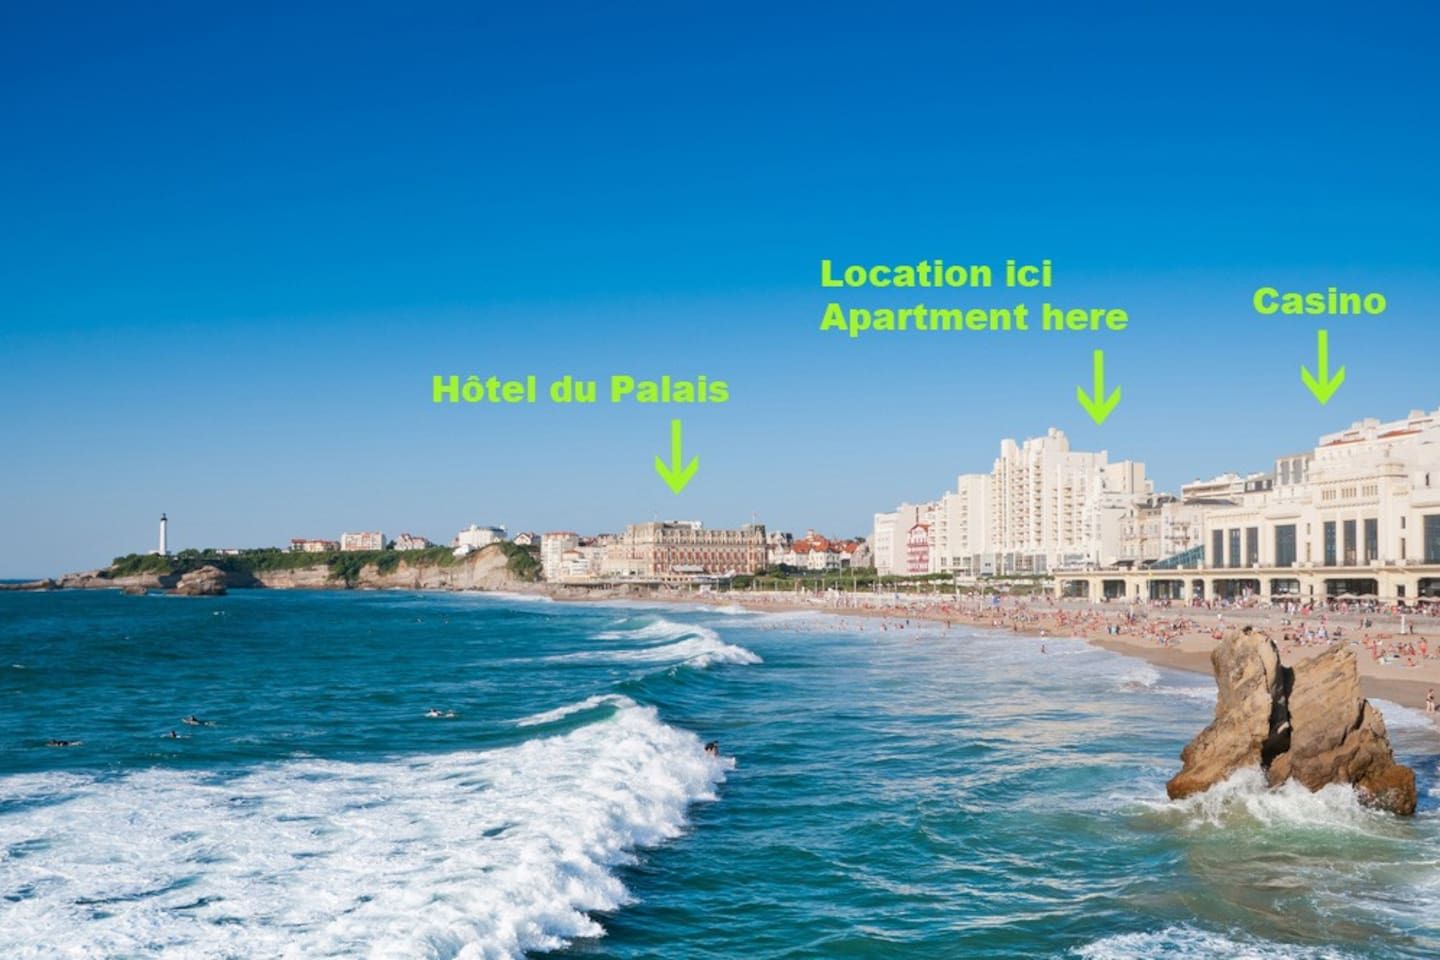 This photo shows where the apartment is located